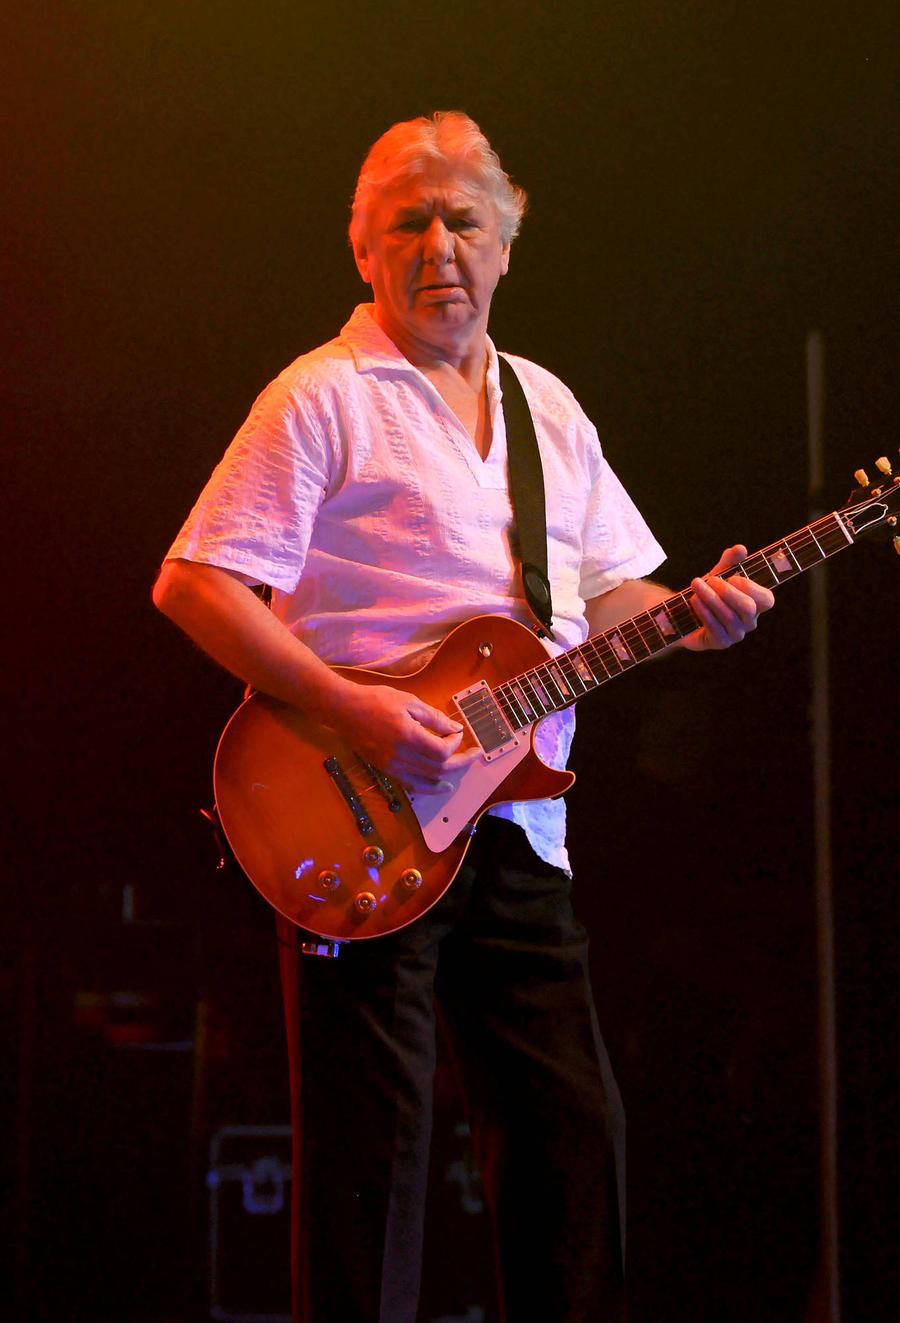 Bad Company Star Mick Ralphs Suffers Stroke